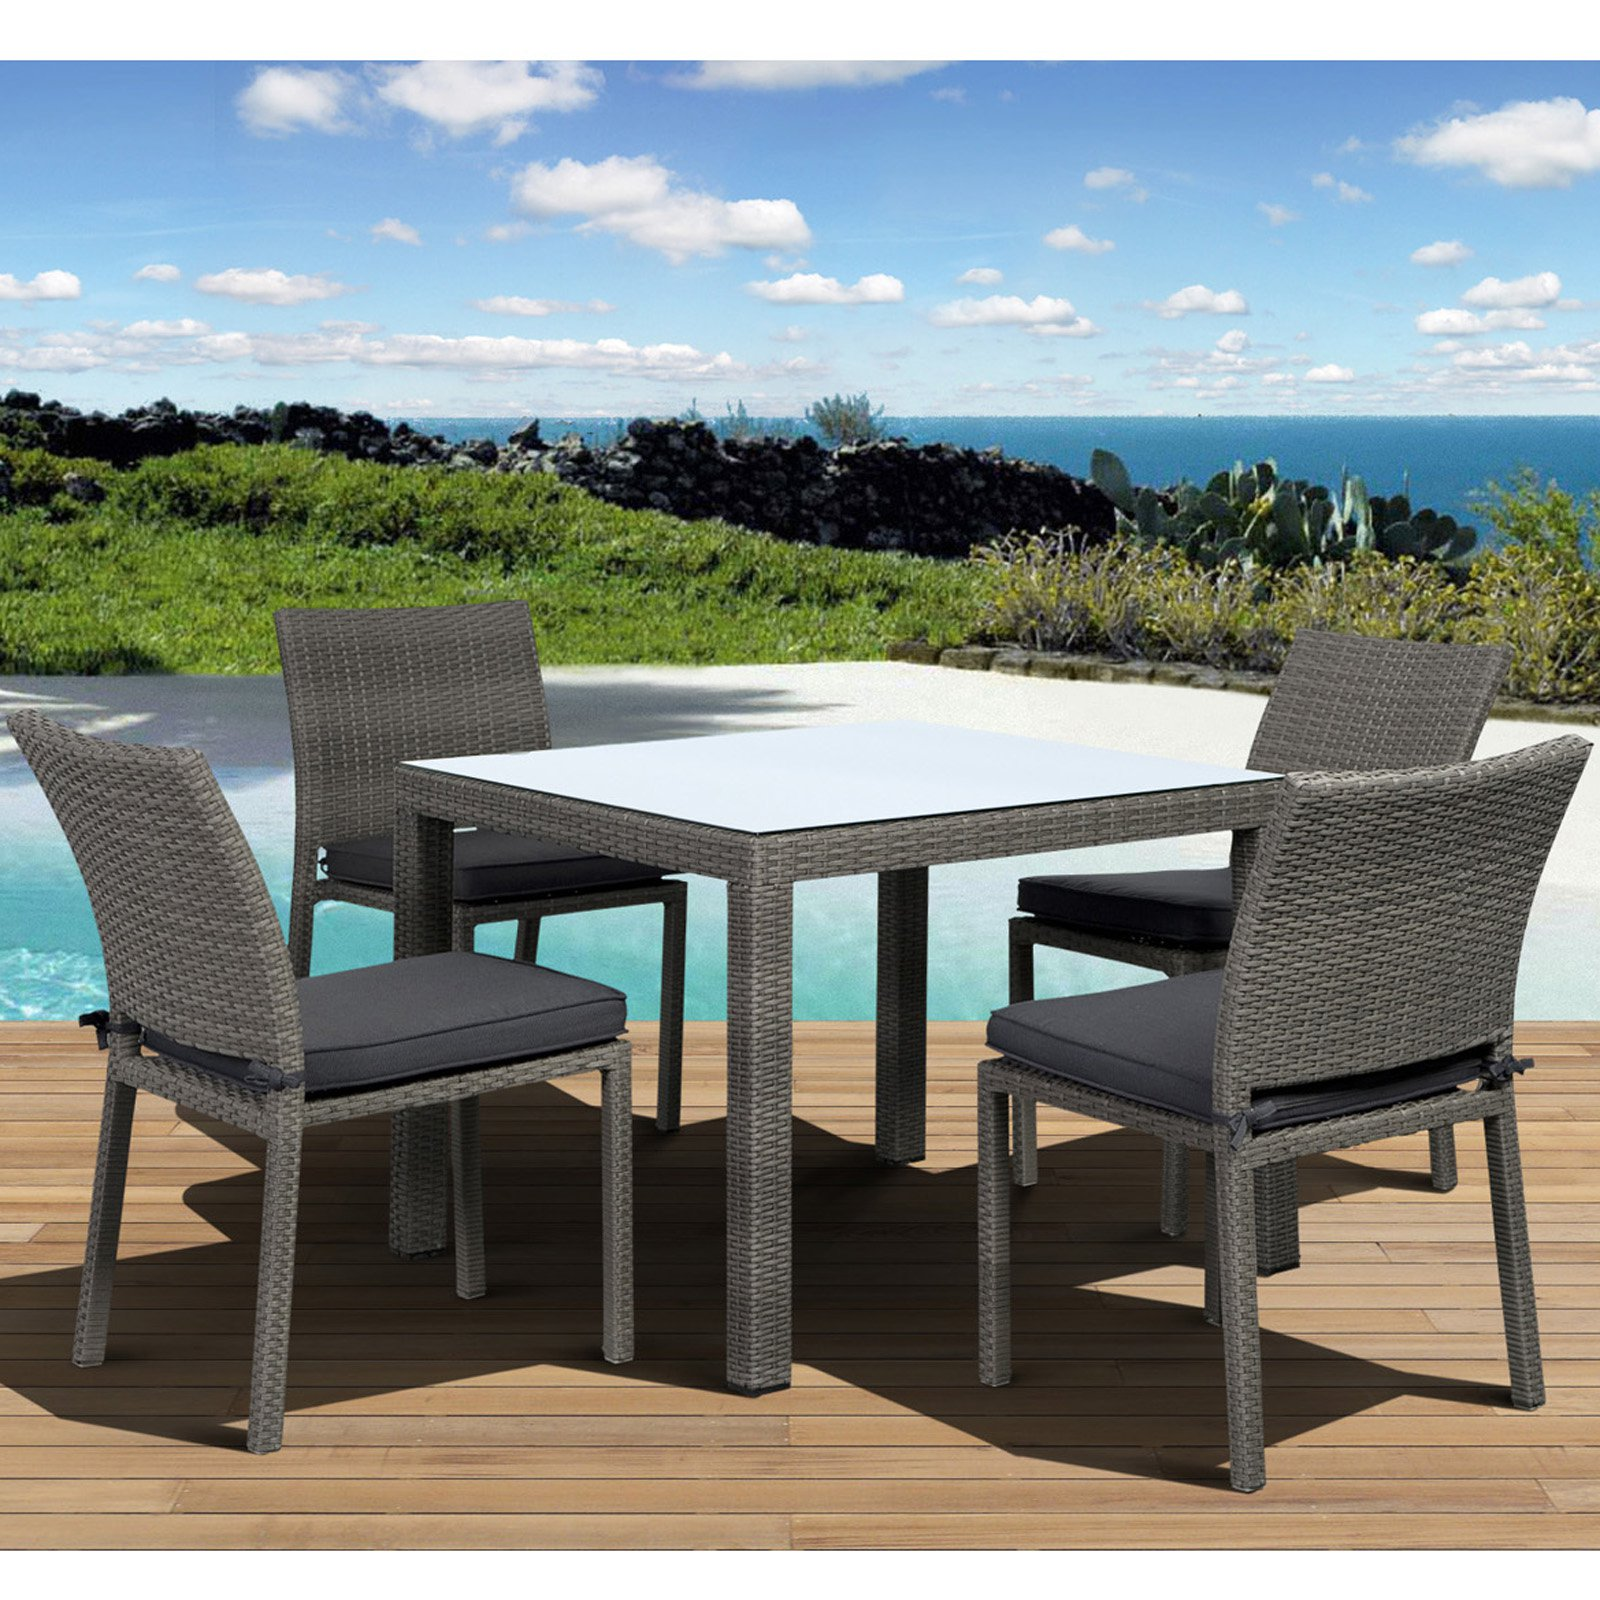 Atlantic Liberty All-Weather Wicker Patio Dining Set - Seats 4